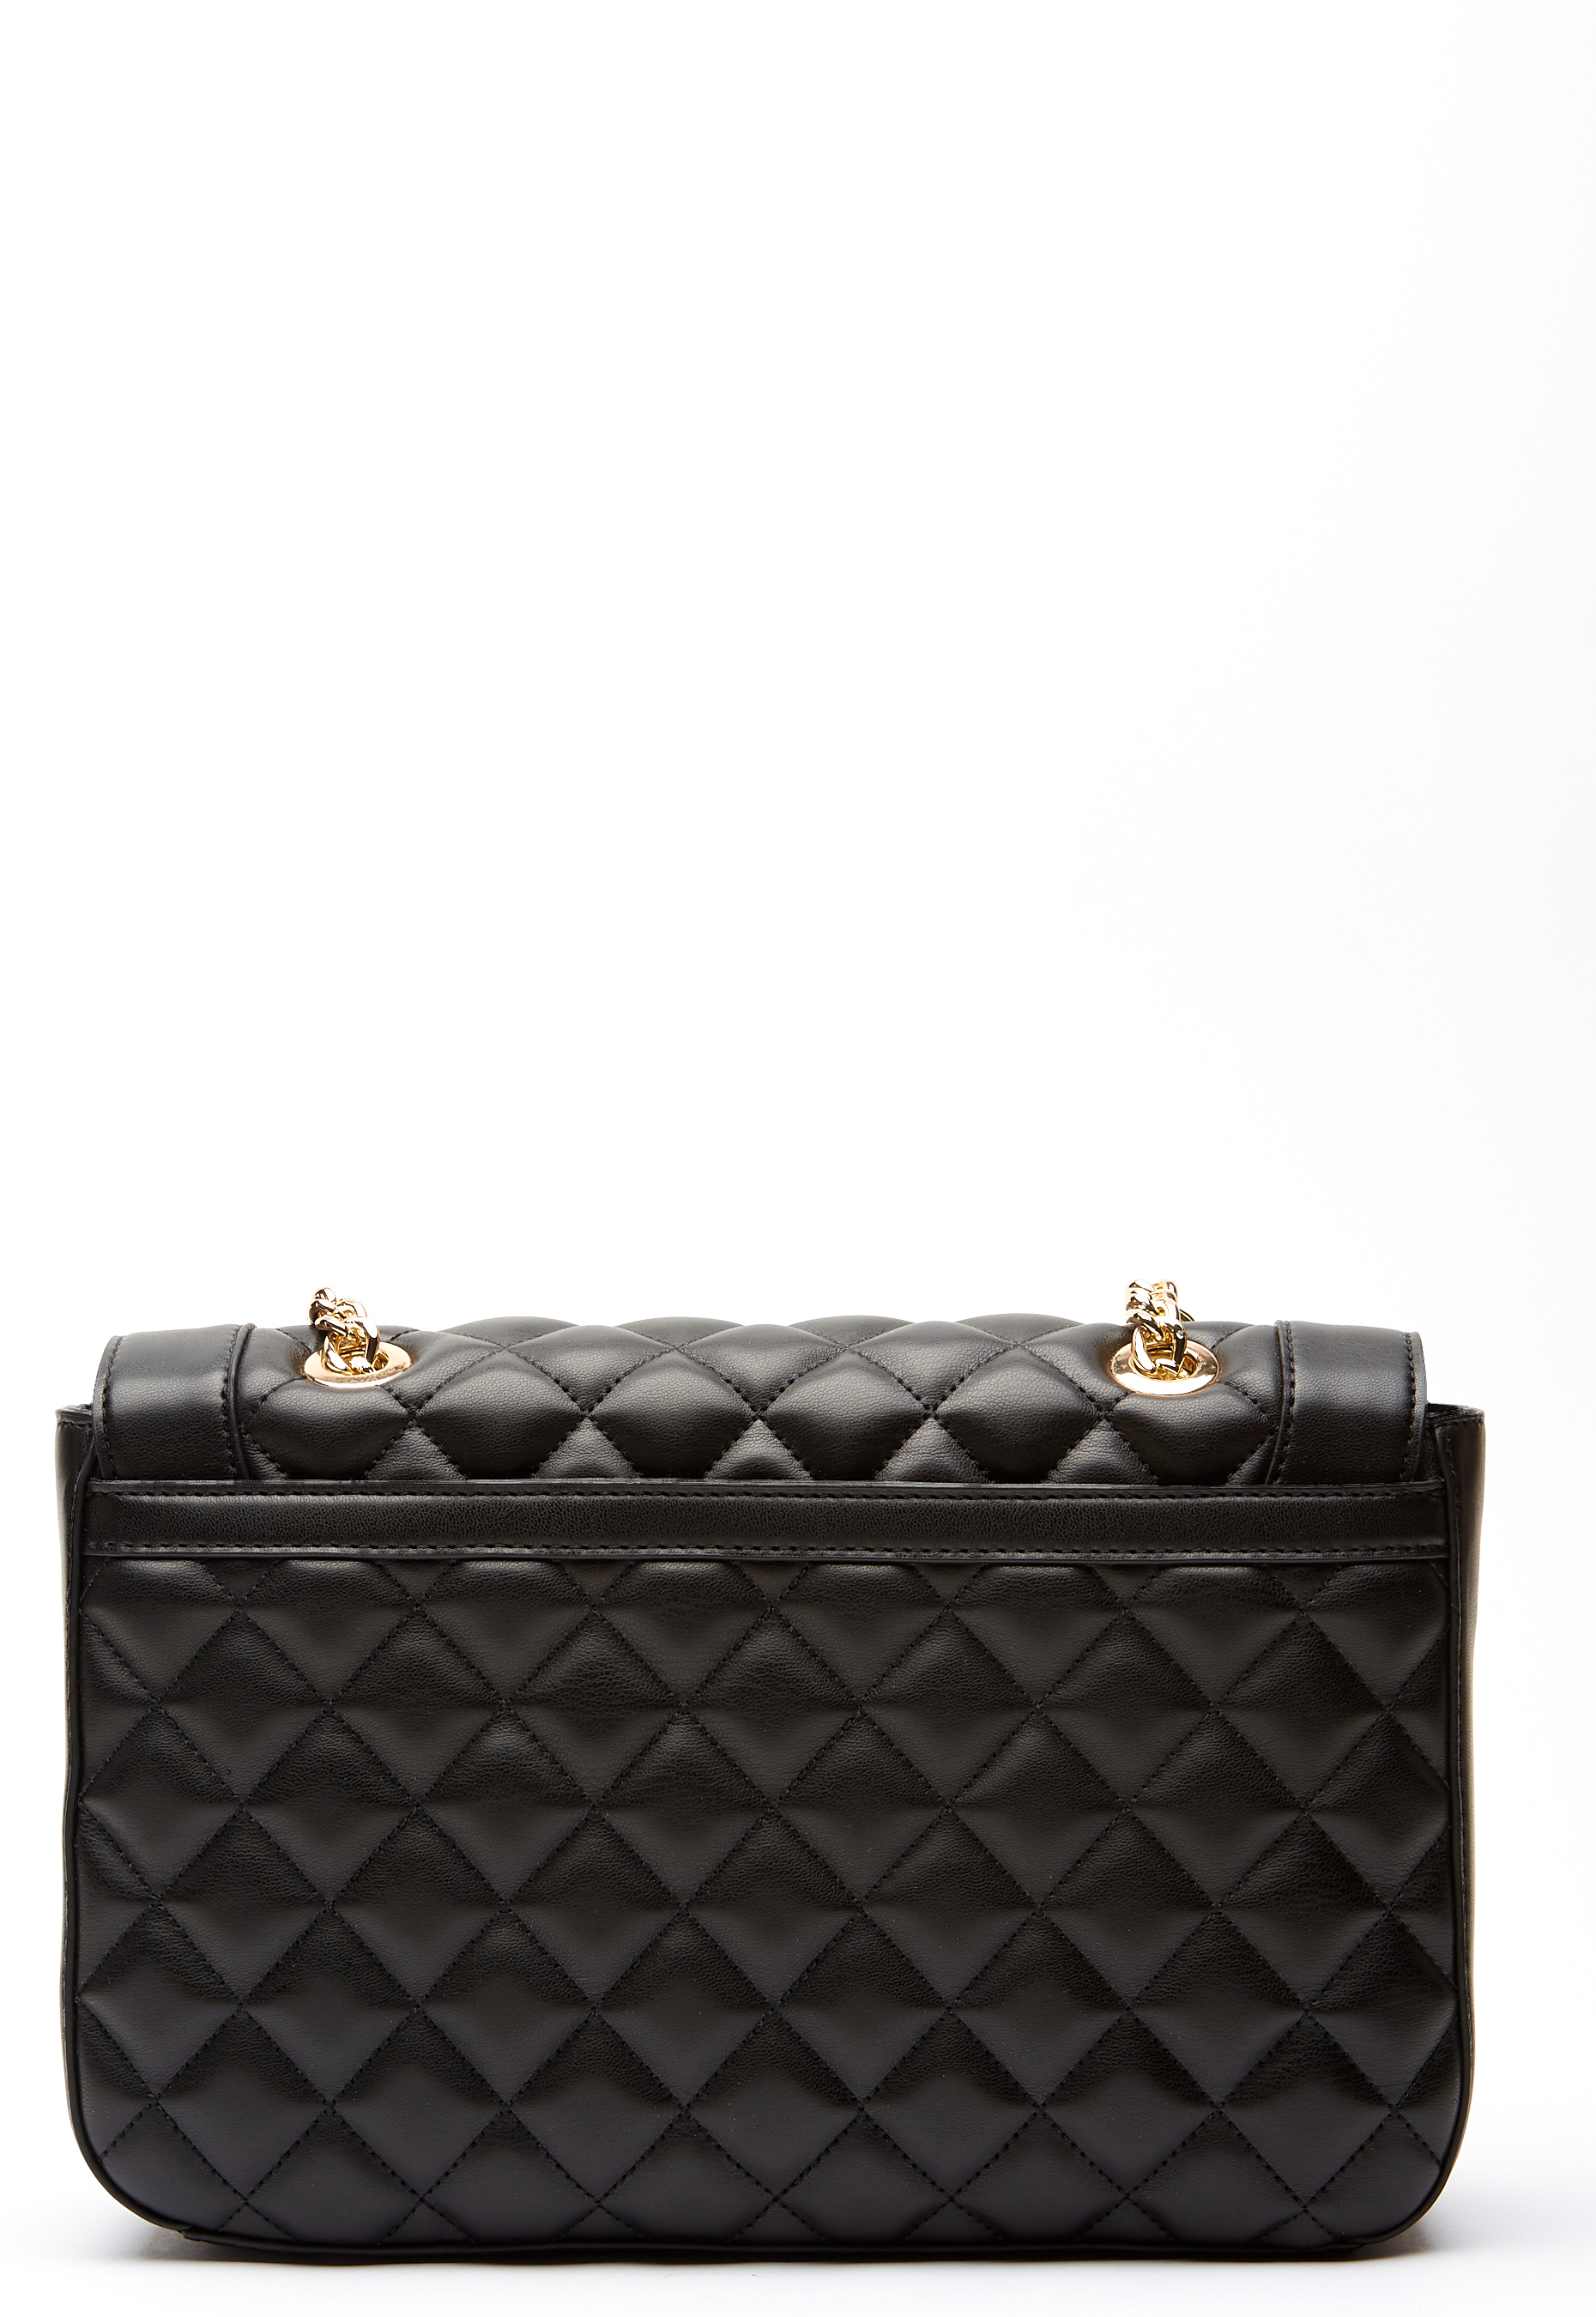 20bc48efdec2 Love Moschino Quilted Big Chain Bag Black Gold - Bubbleroom